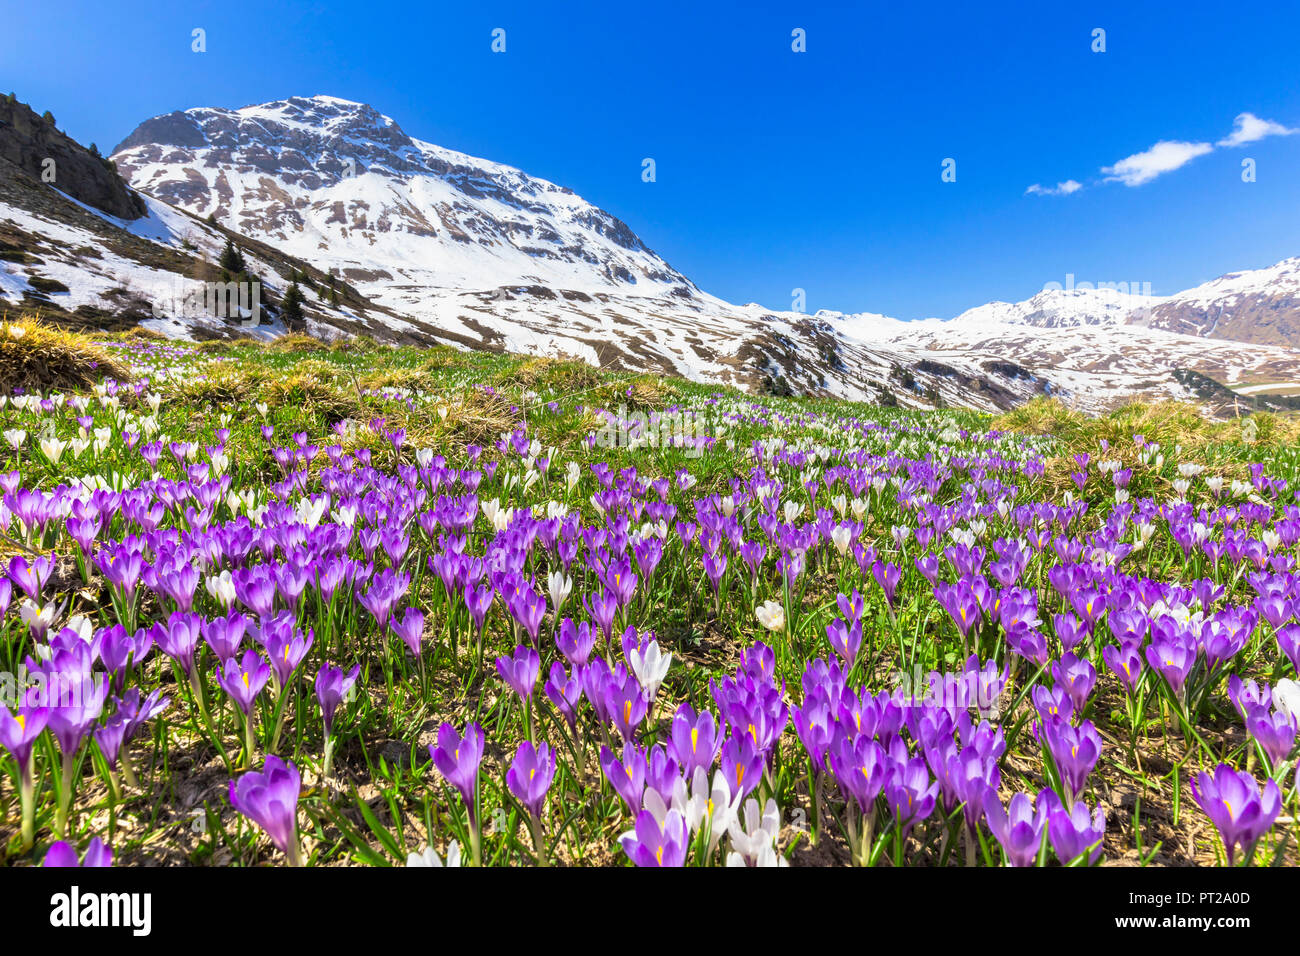 Flowering of purple Crocus nivea at Julier Pass, Parc Ela, Region of Albula, Canton of Graubünden, Switzerland, Europe, - Stock Image